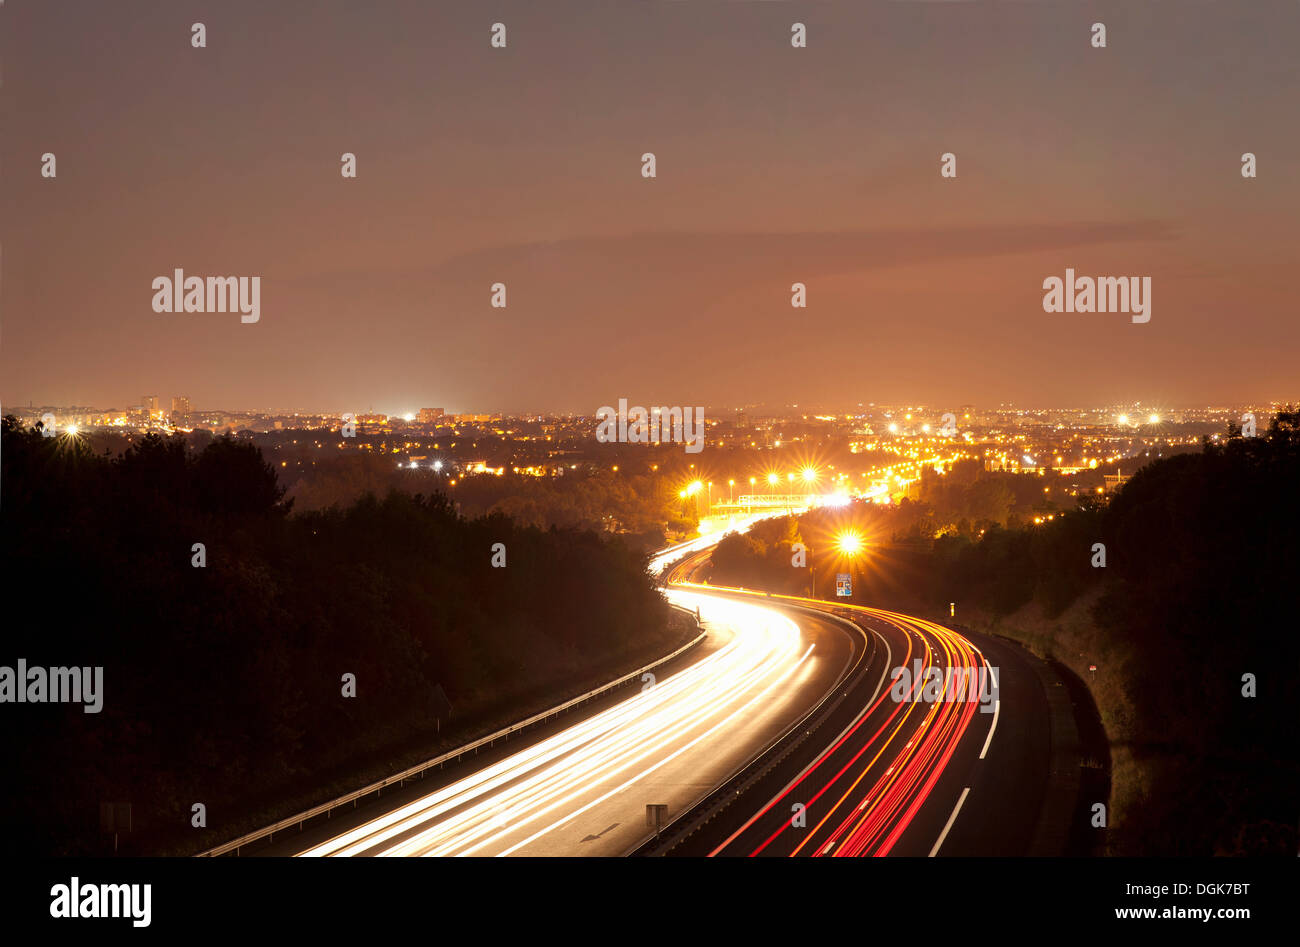 Traffic on road at night in Toulouse, France - Stock Image